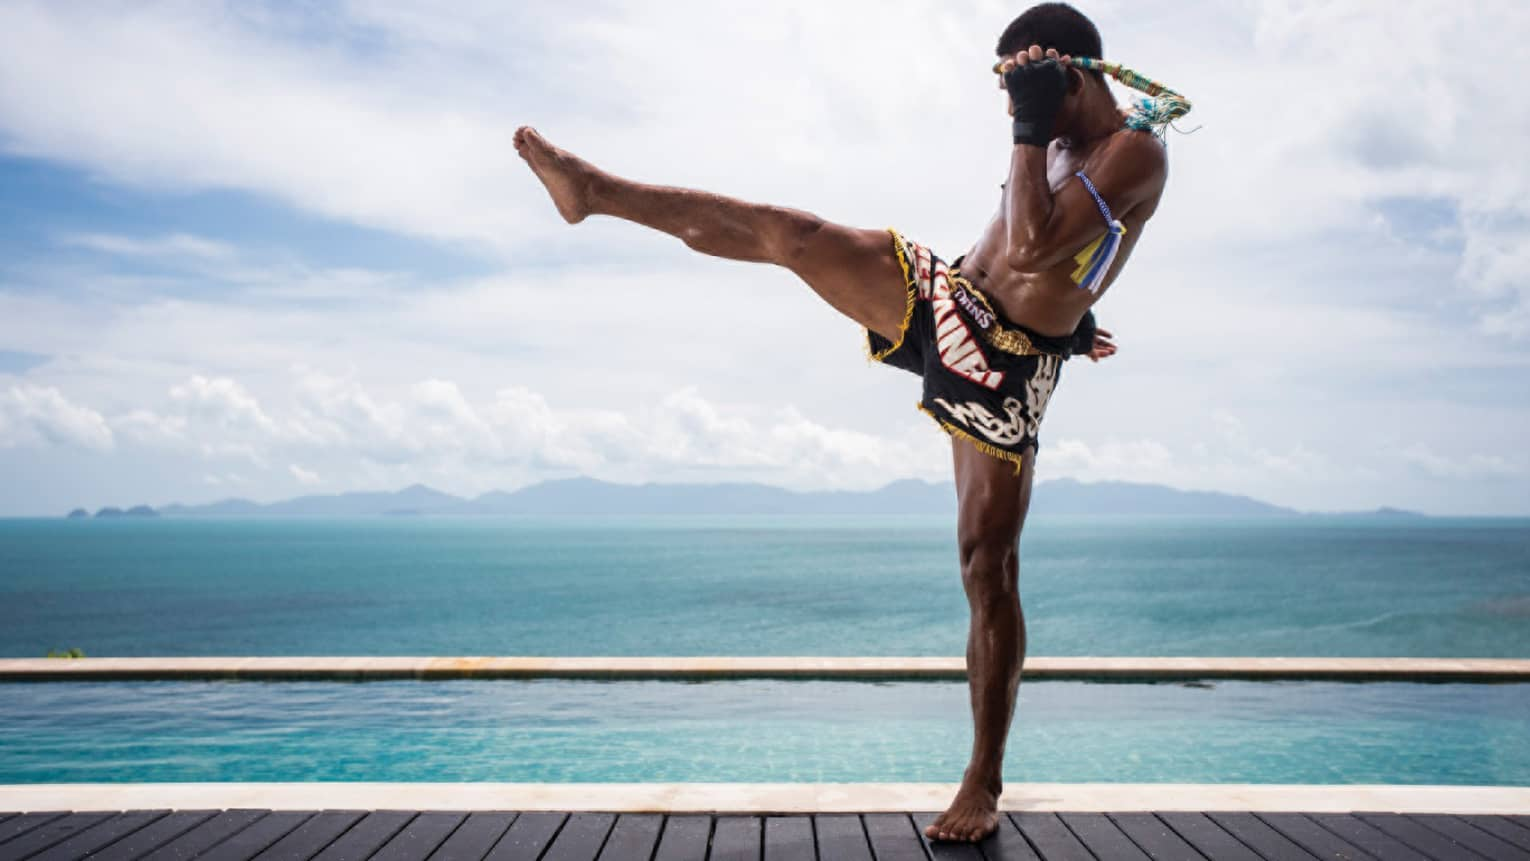 Side view of Muay Thai kick-boxer wearing shorts, doing leg kick on swimming pool deck in front of ocean